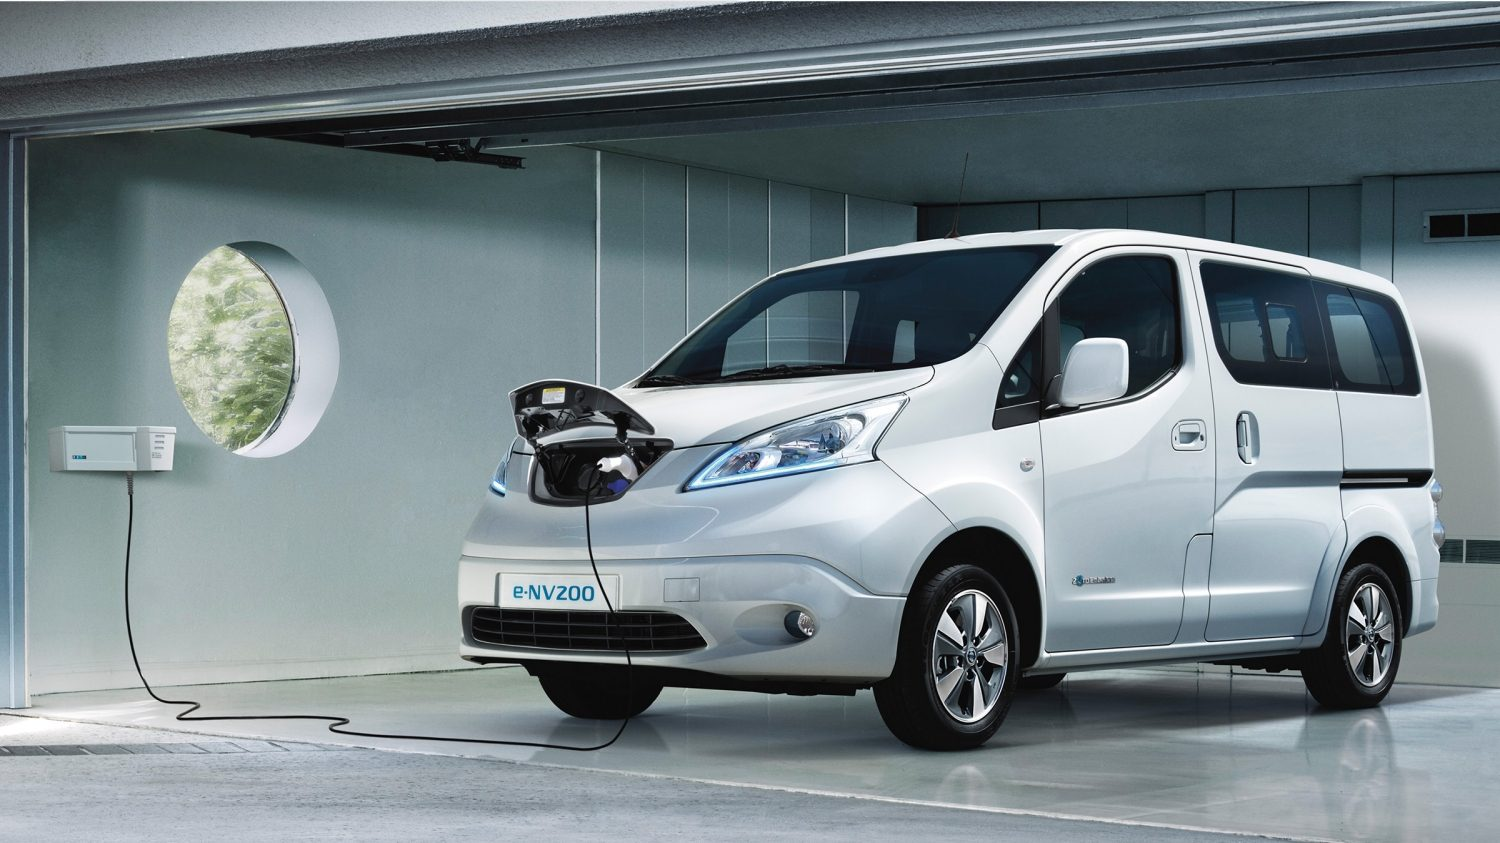 nissan e nv200 evalia 7 sitzer elektroauto. Black Bedroom Furniture Sets. Home Design Ideas